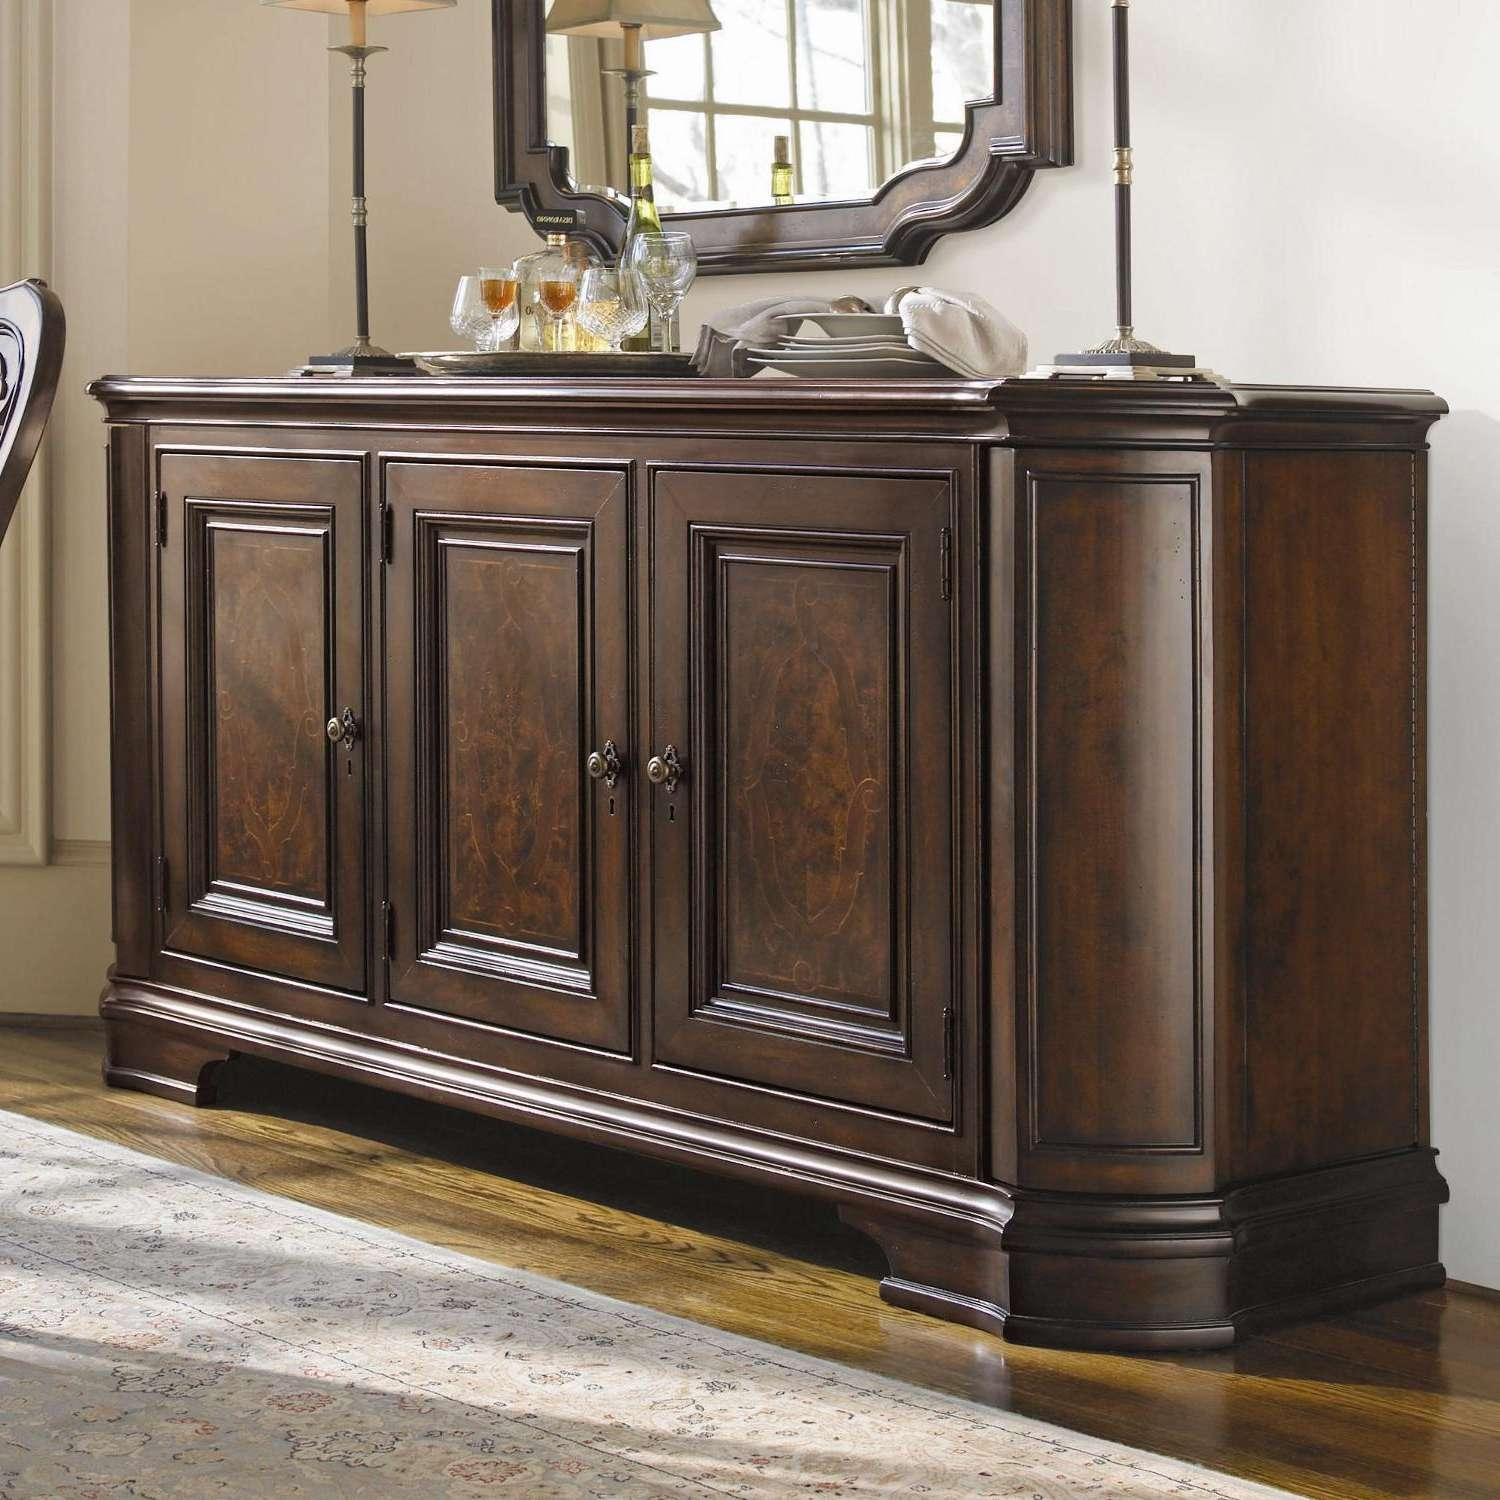 Vintage Sideboards And Buffets Furniture — New Decoration : The For Sideboards Decors (View 13 of 20)